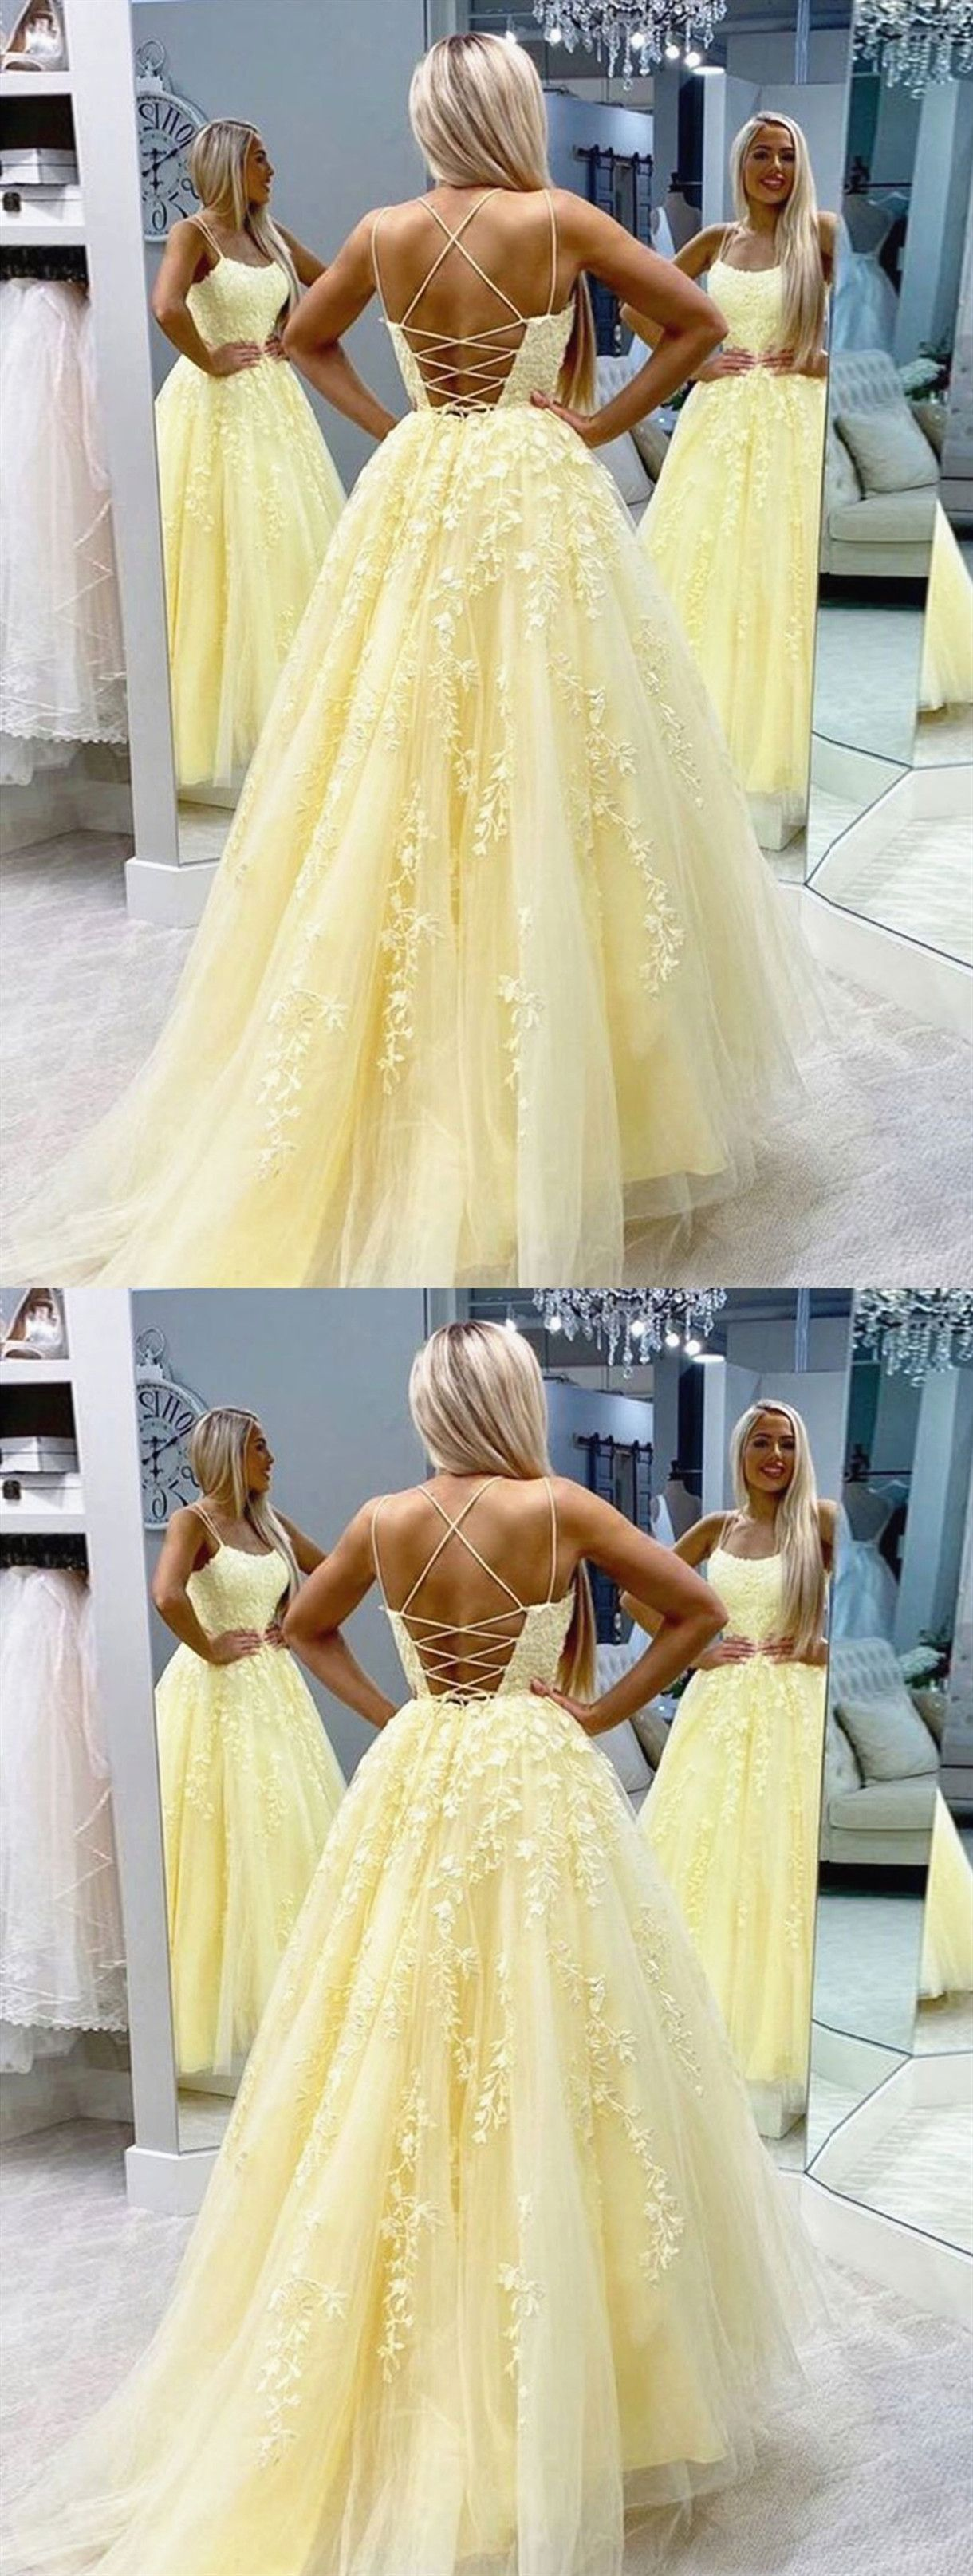 Backless long yellow lace prom dresses backless yellow